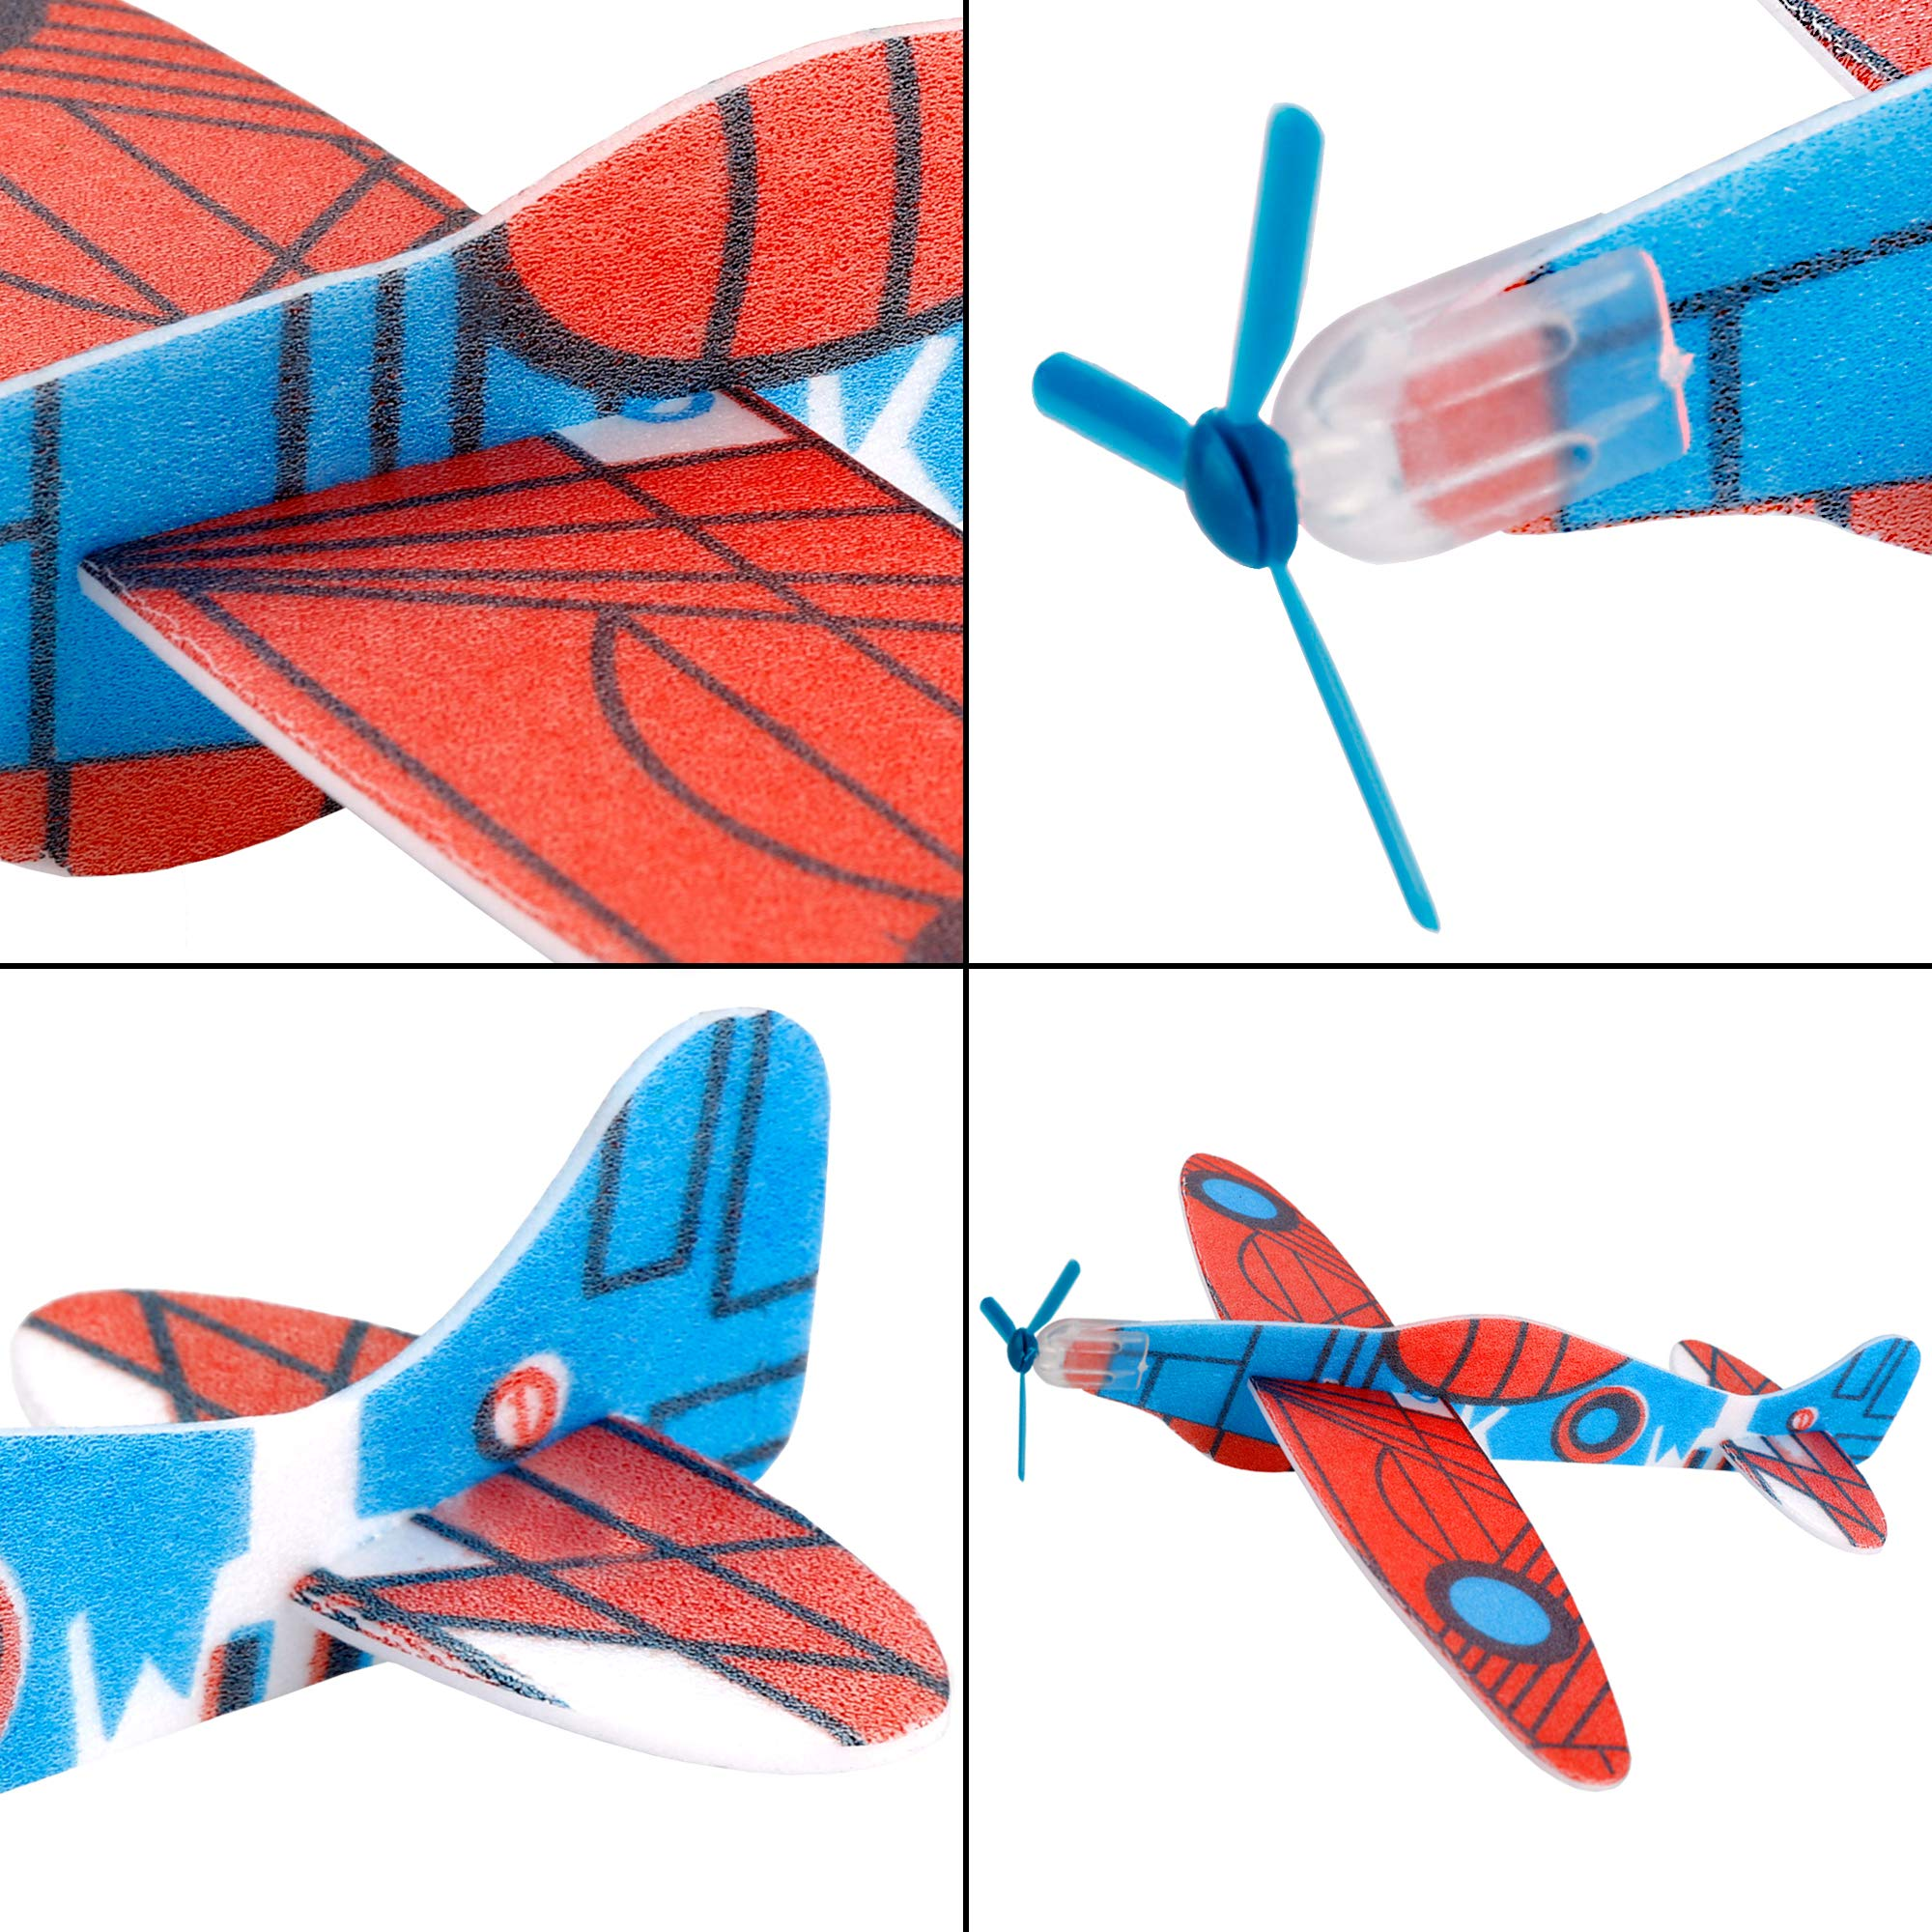 UPINS 48 Pcs 8'' Flying Glider Plane,6 Different Designs by UPINS (Image #2)